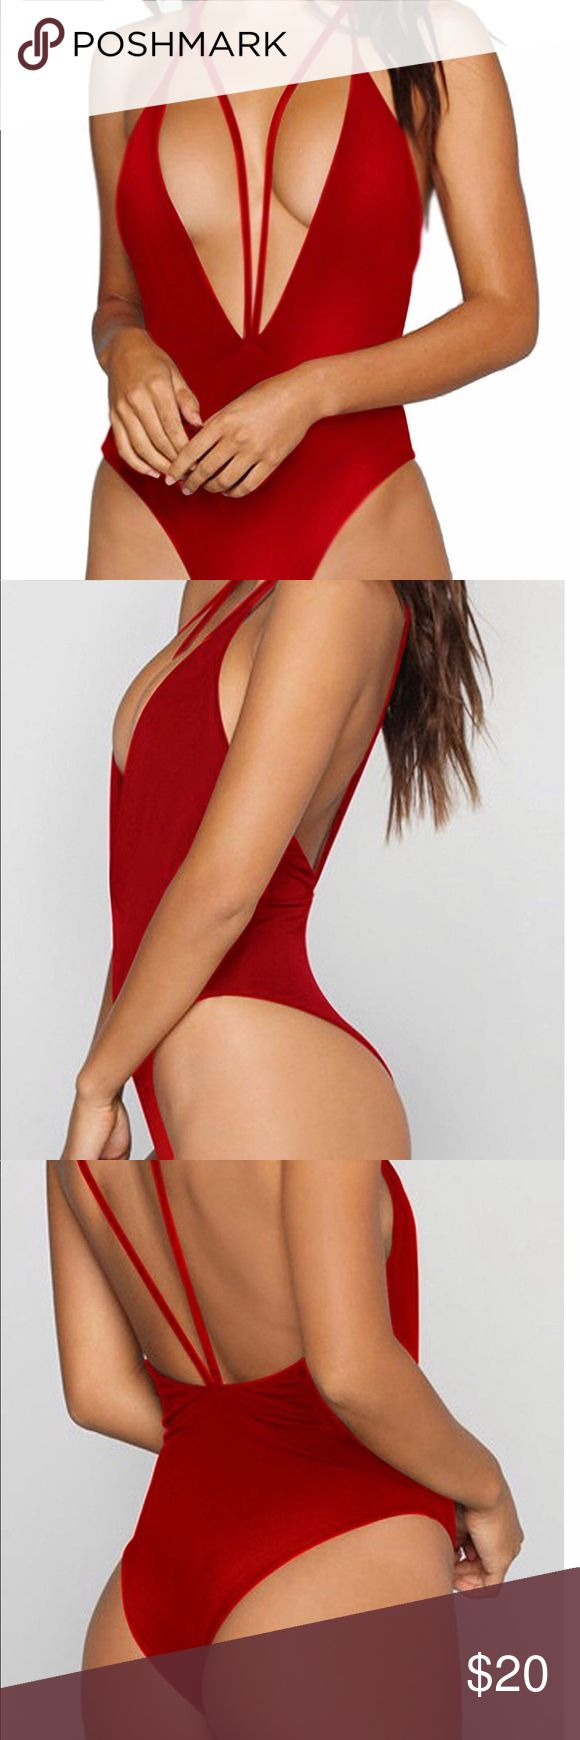 one piece swimsuit Women monokini swimsuit Swim One Pieces